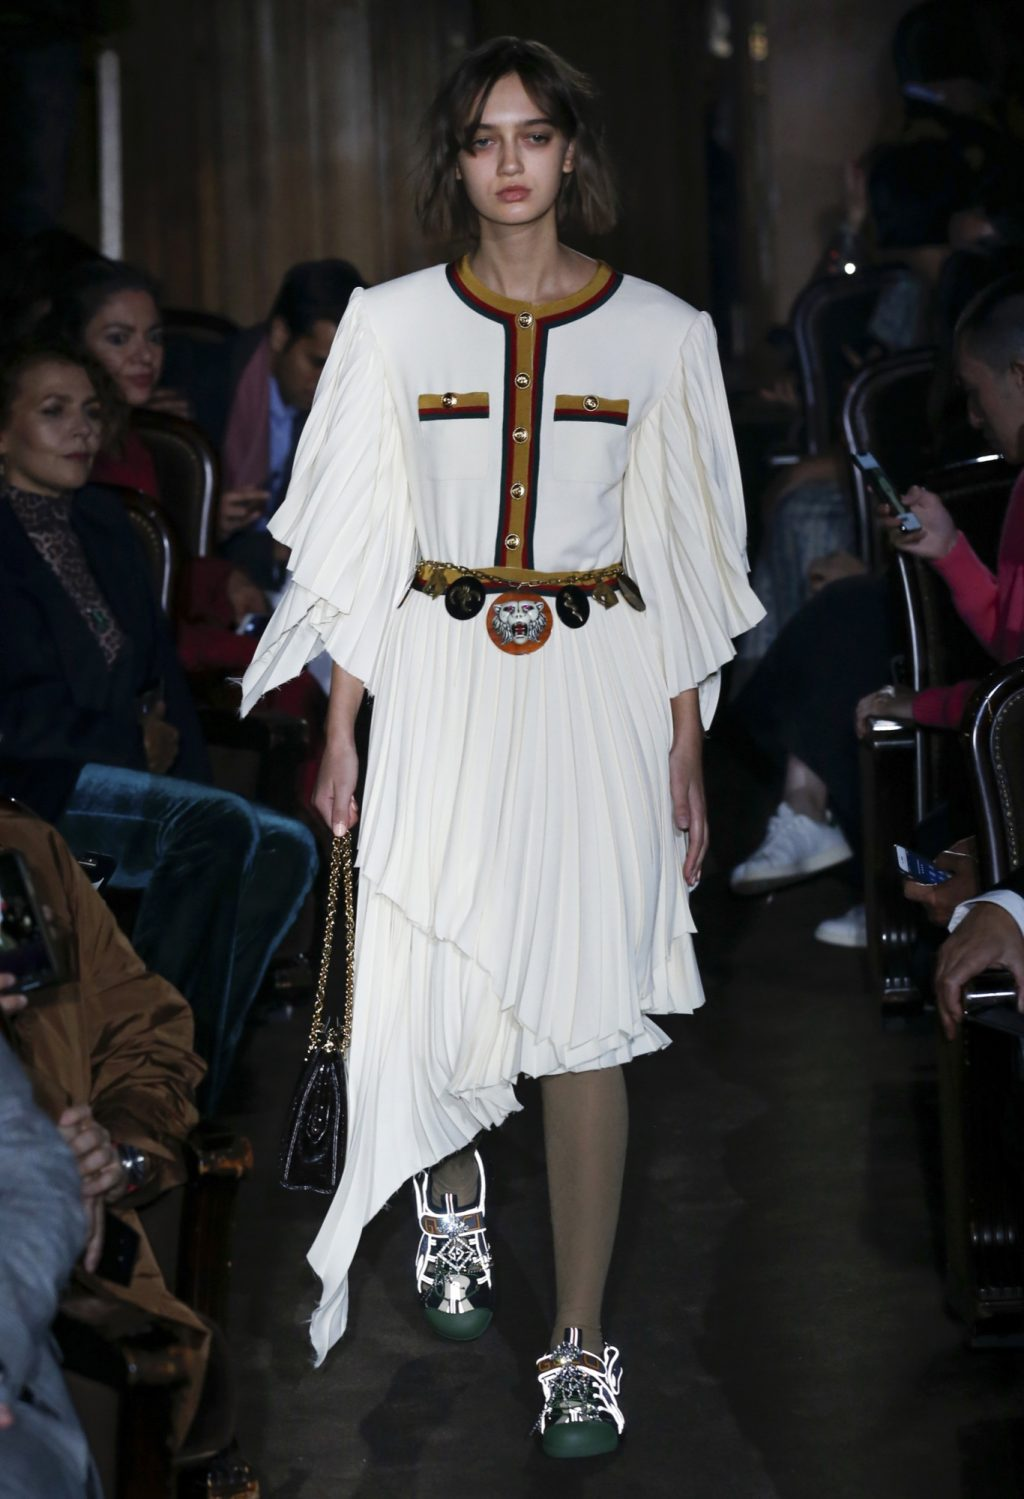 Gucci Does Parisian Glamour for SS19 – But With a Twist